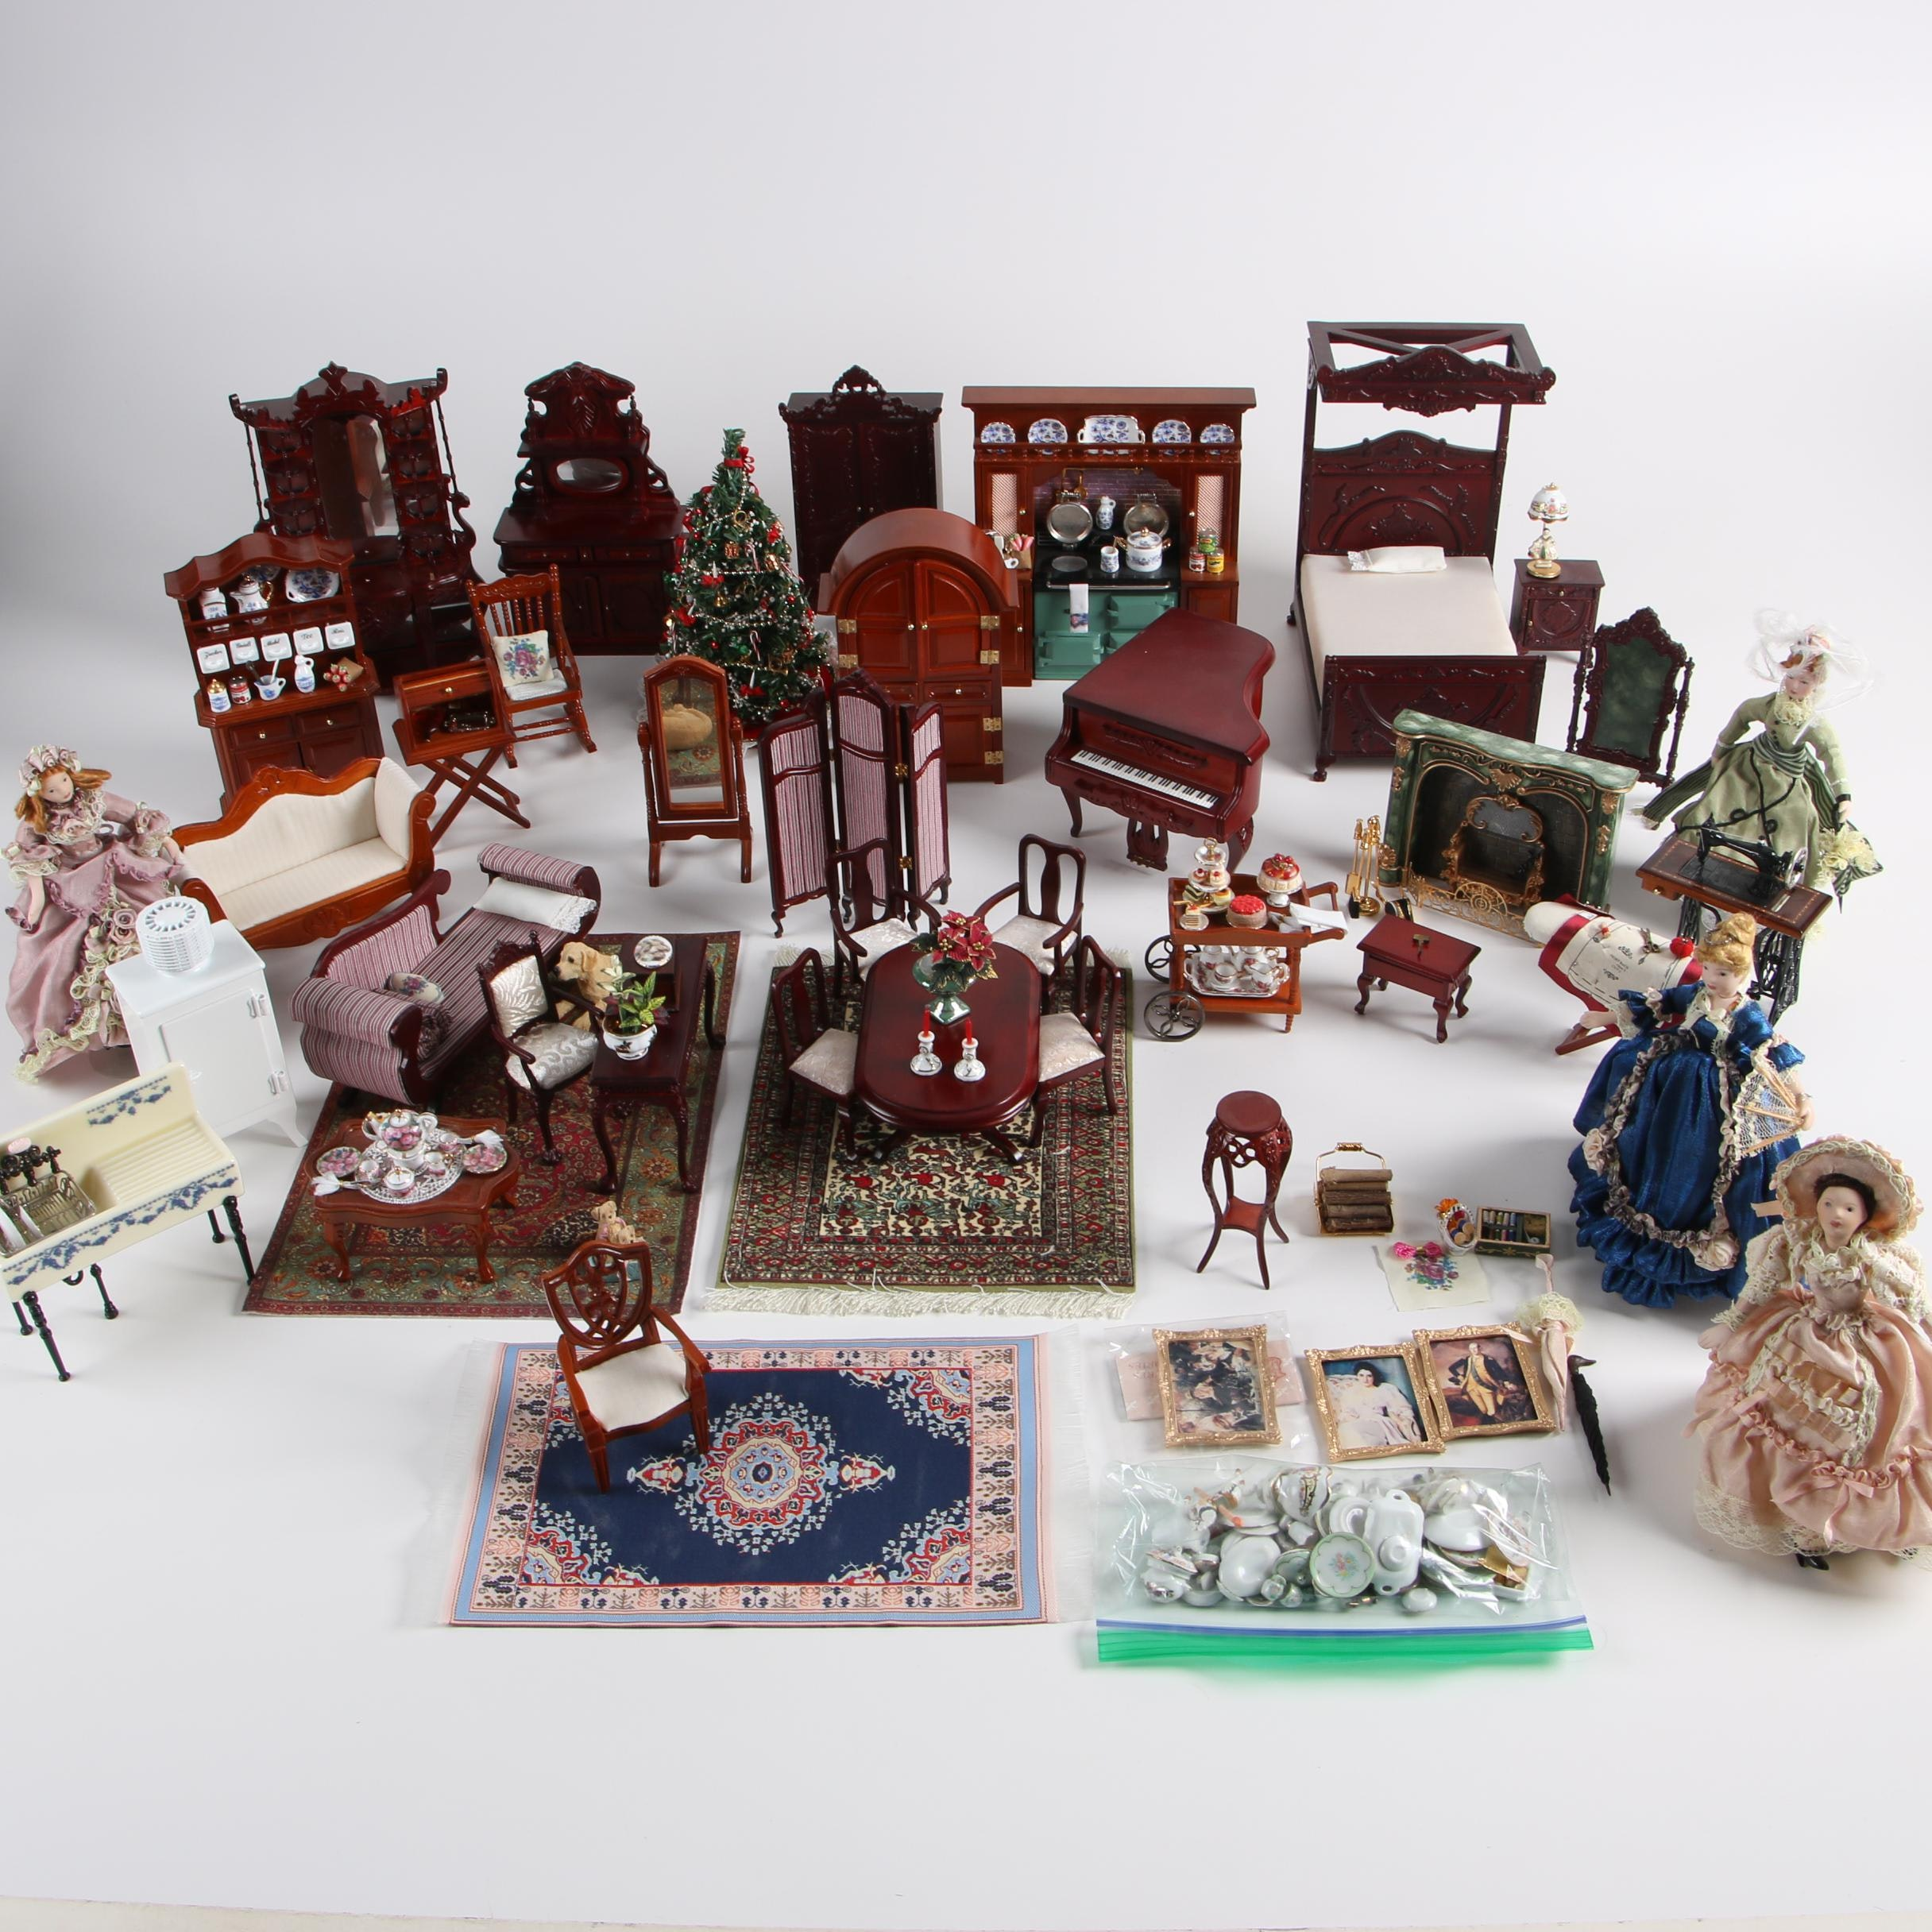 Vintage Dollhouse Furniture With Miniature Victorian Style Porcelain